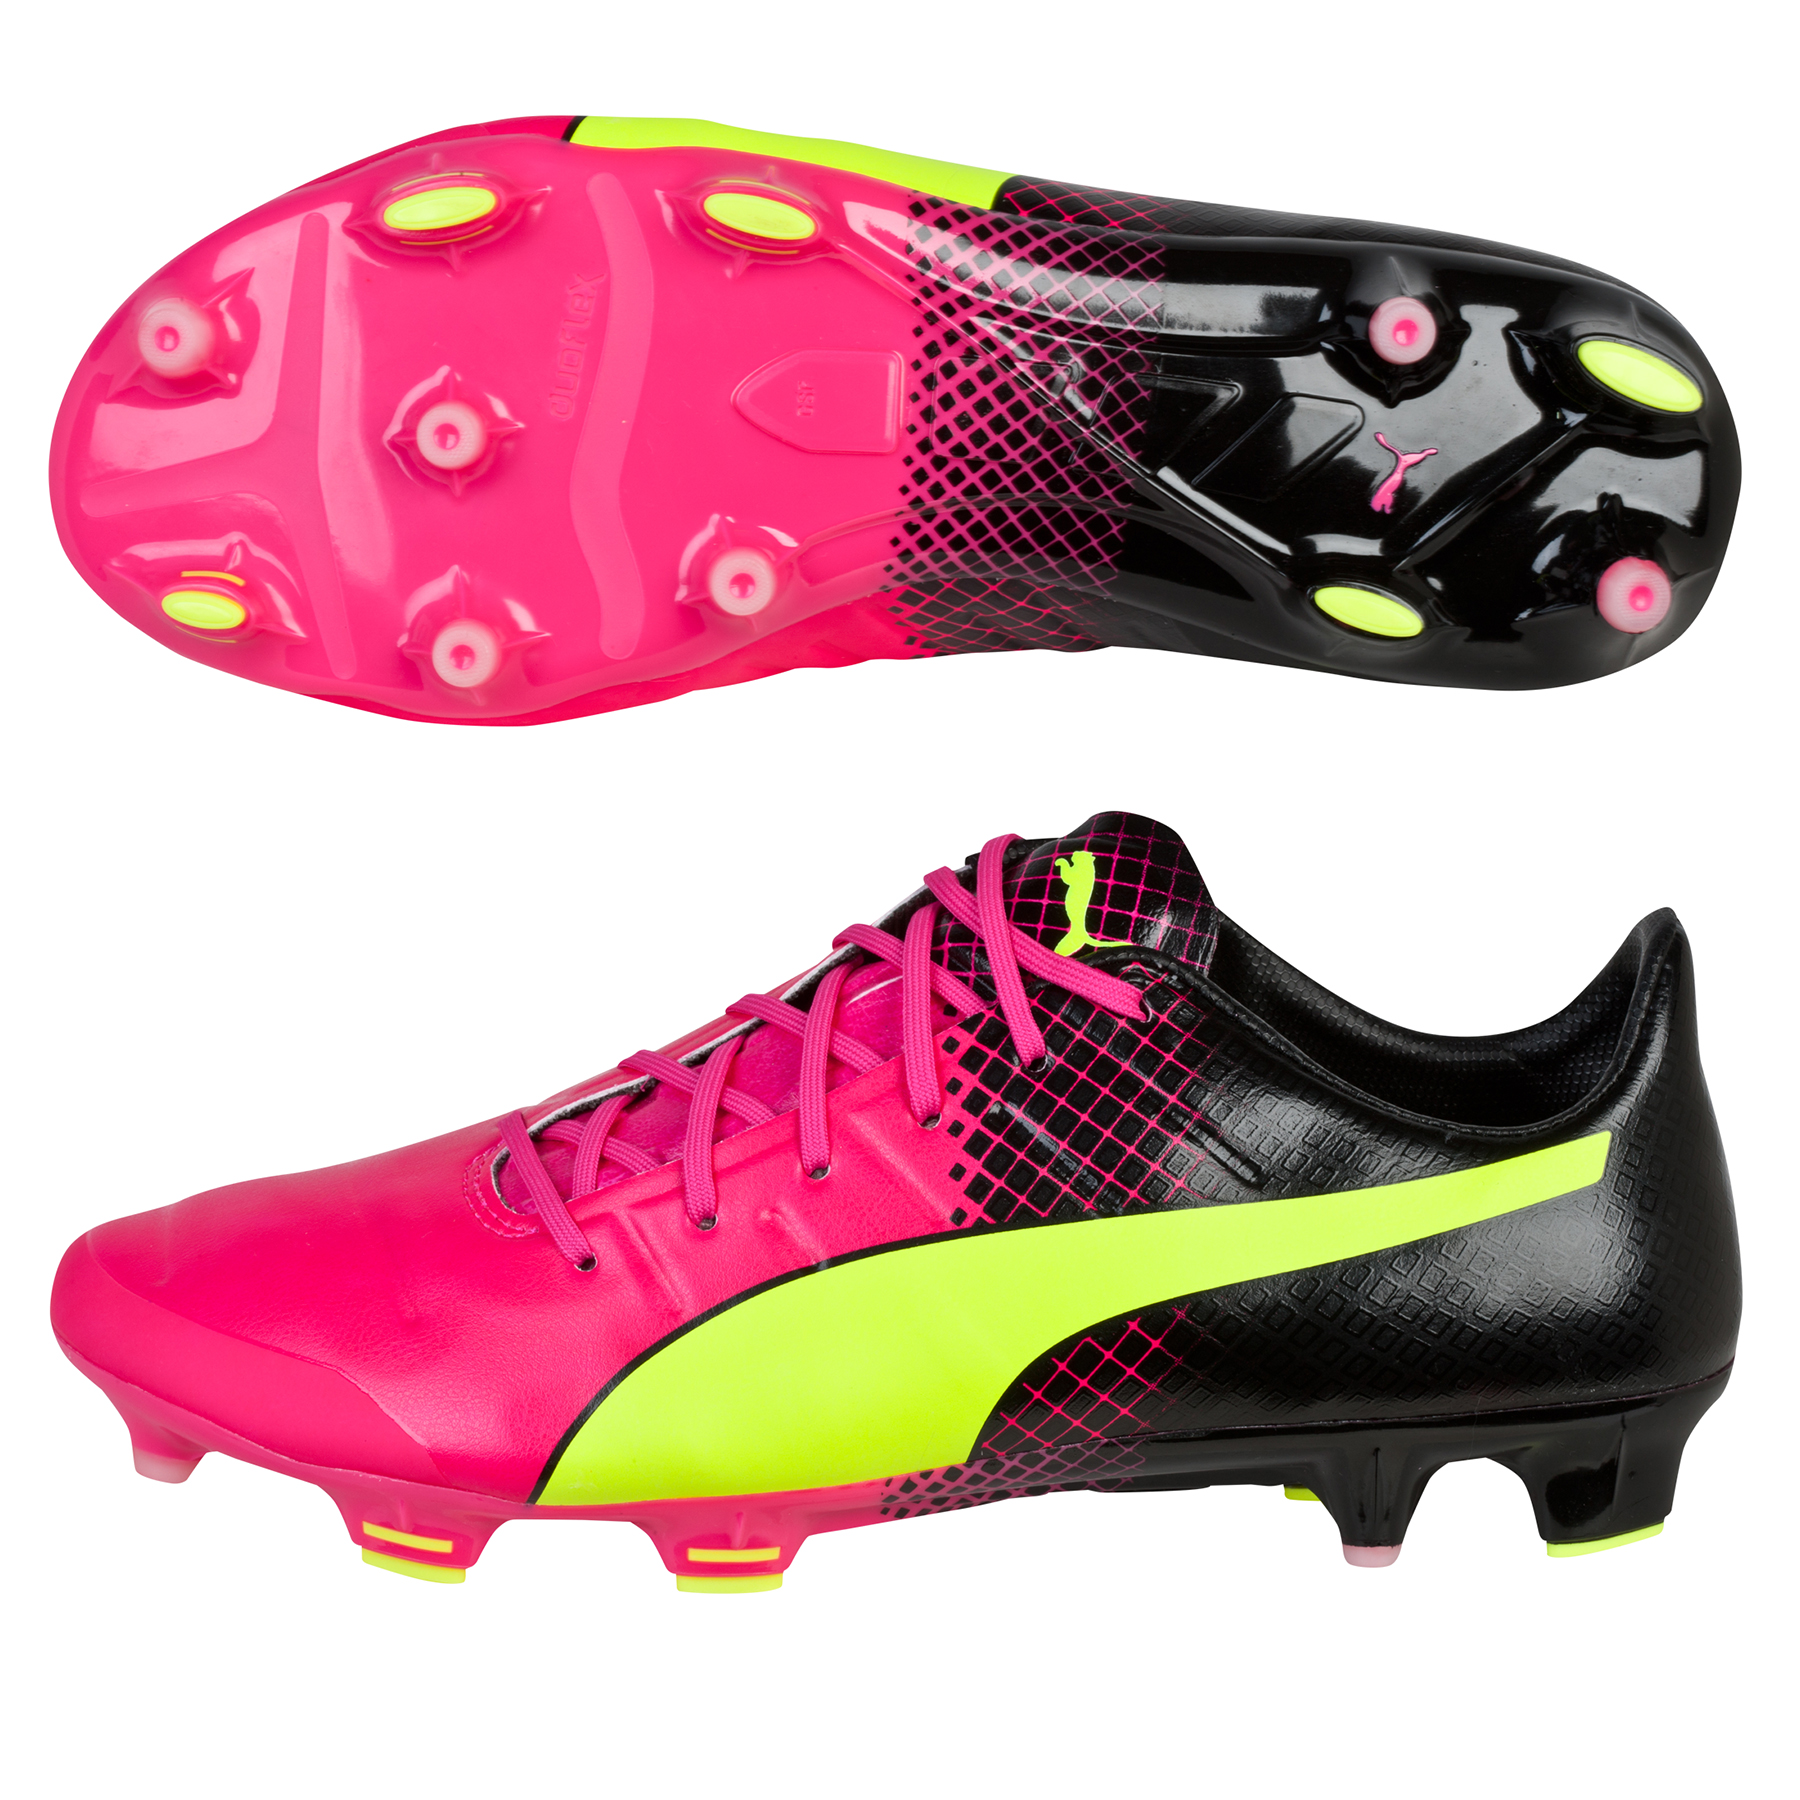 Puma evoPOWER 1.3 Tricks FG Pink